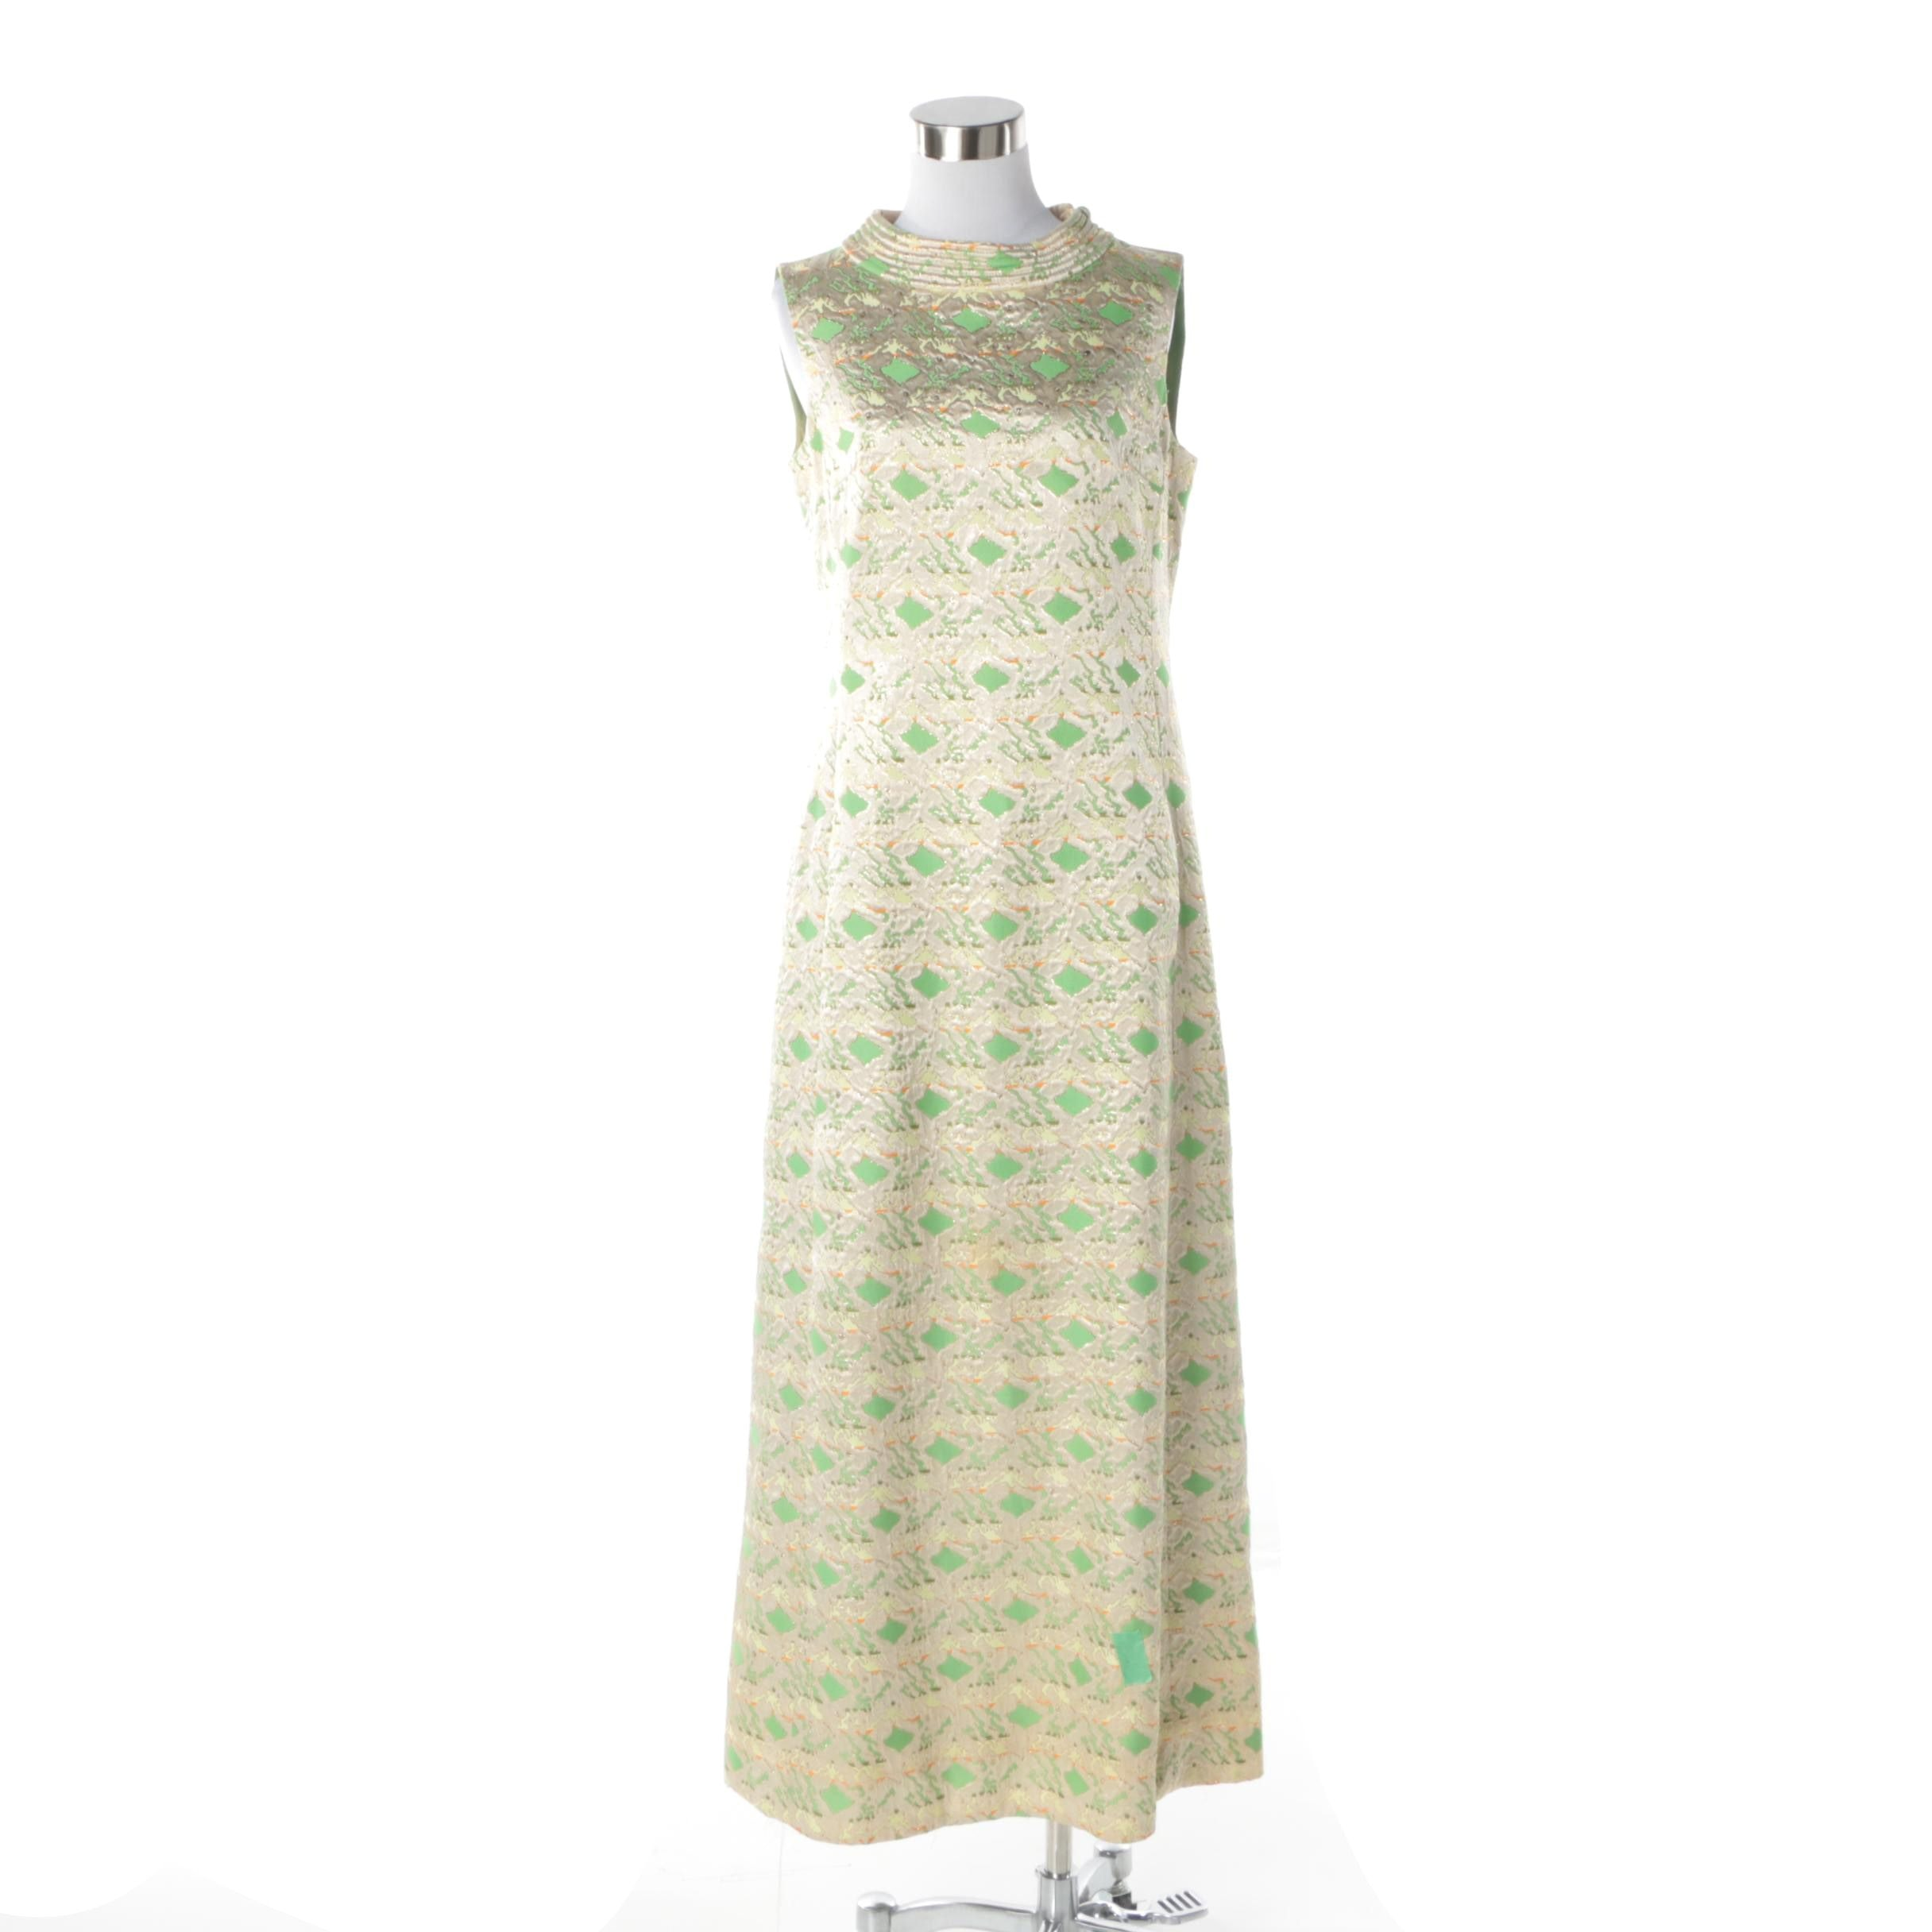 1960s Vintage Gold and Green Metallic Brocade Sleeveless Evening Dress